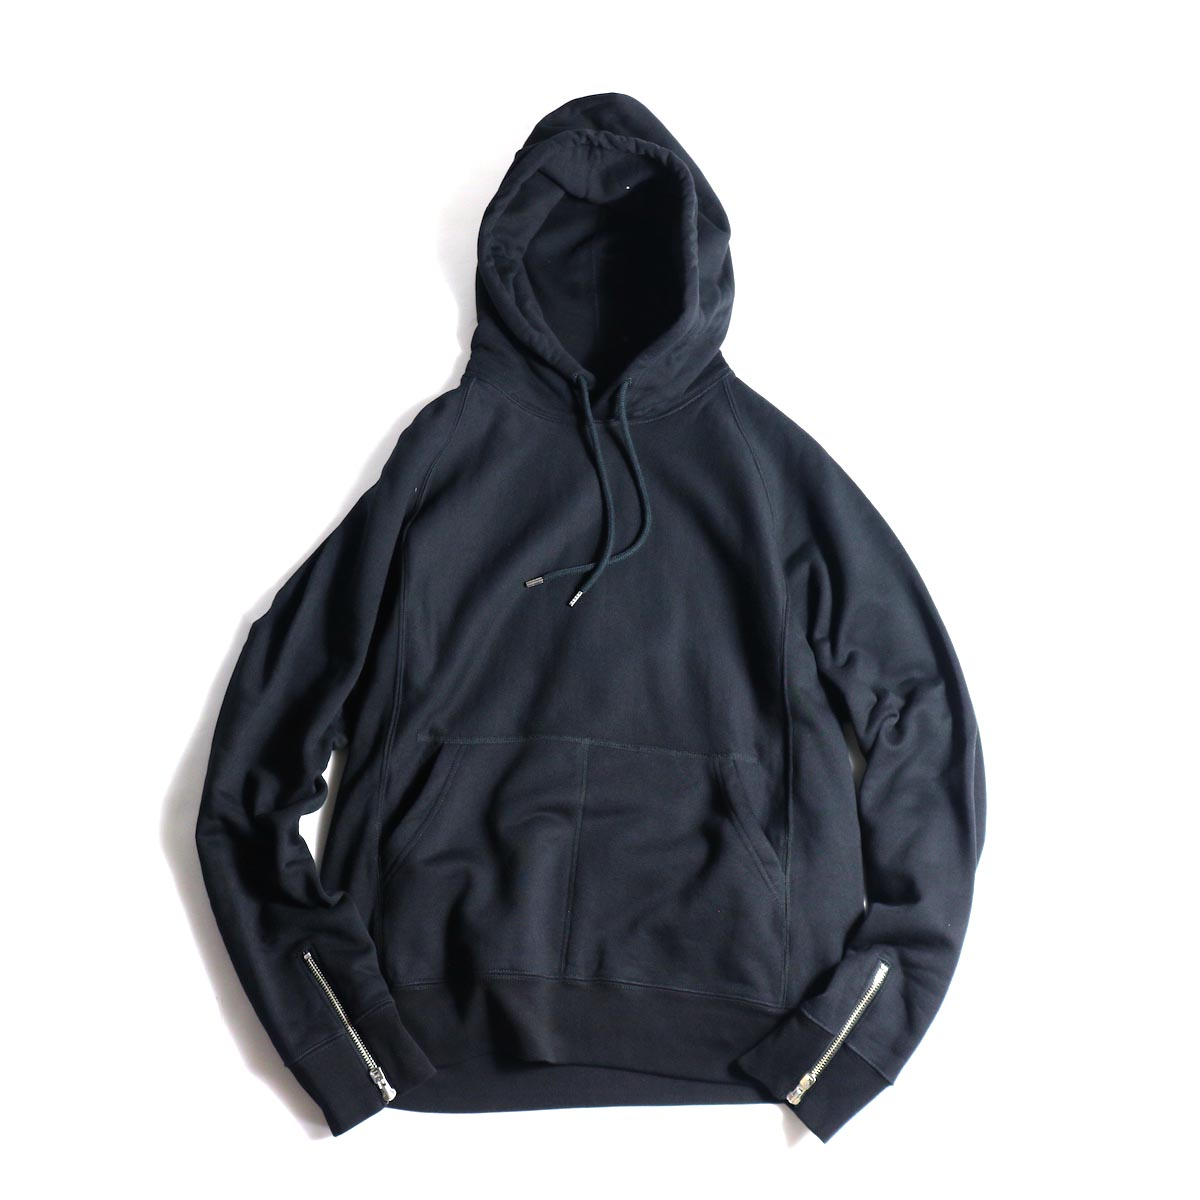 The Soloist / sc.0015bAW20 pullover hoodie. (Black)